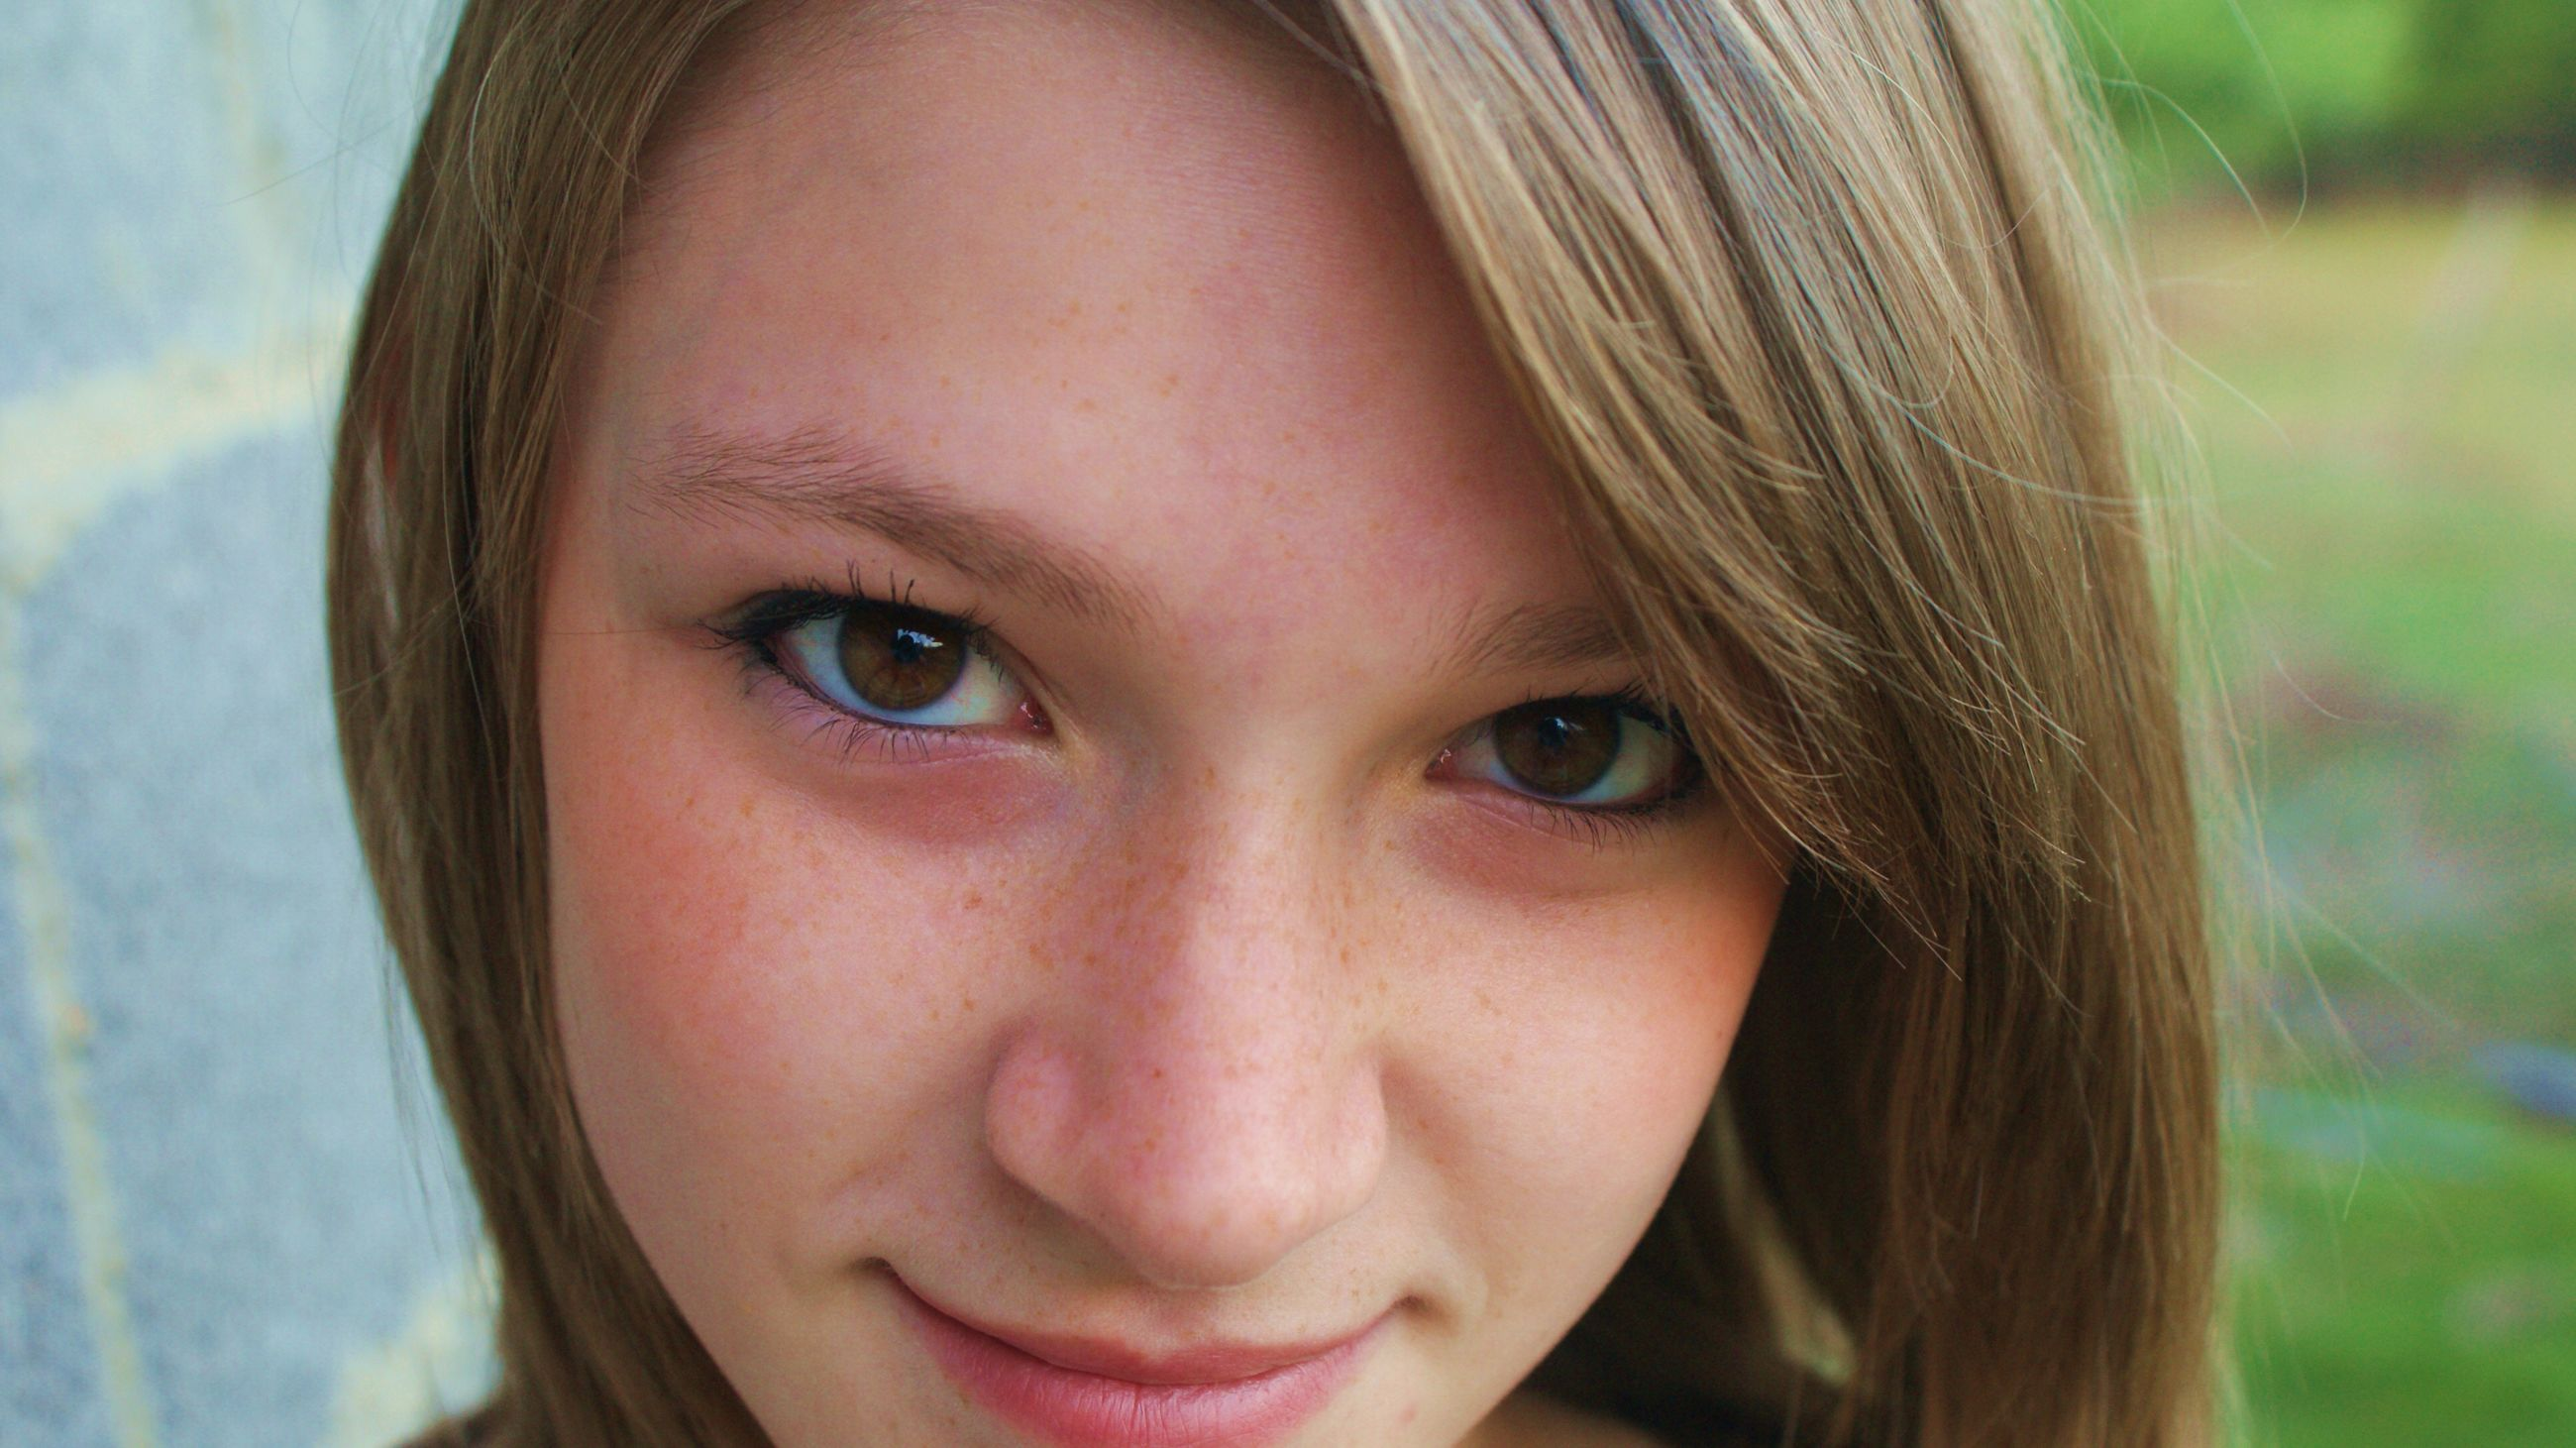 headshot, close-up, looking at camera, person, portrait, young women, young adult, focus on foreground, human face, lifestyles, front view, long hair, beauty, leisure activity, smiling, brown hair, head and shoulders